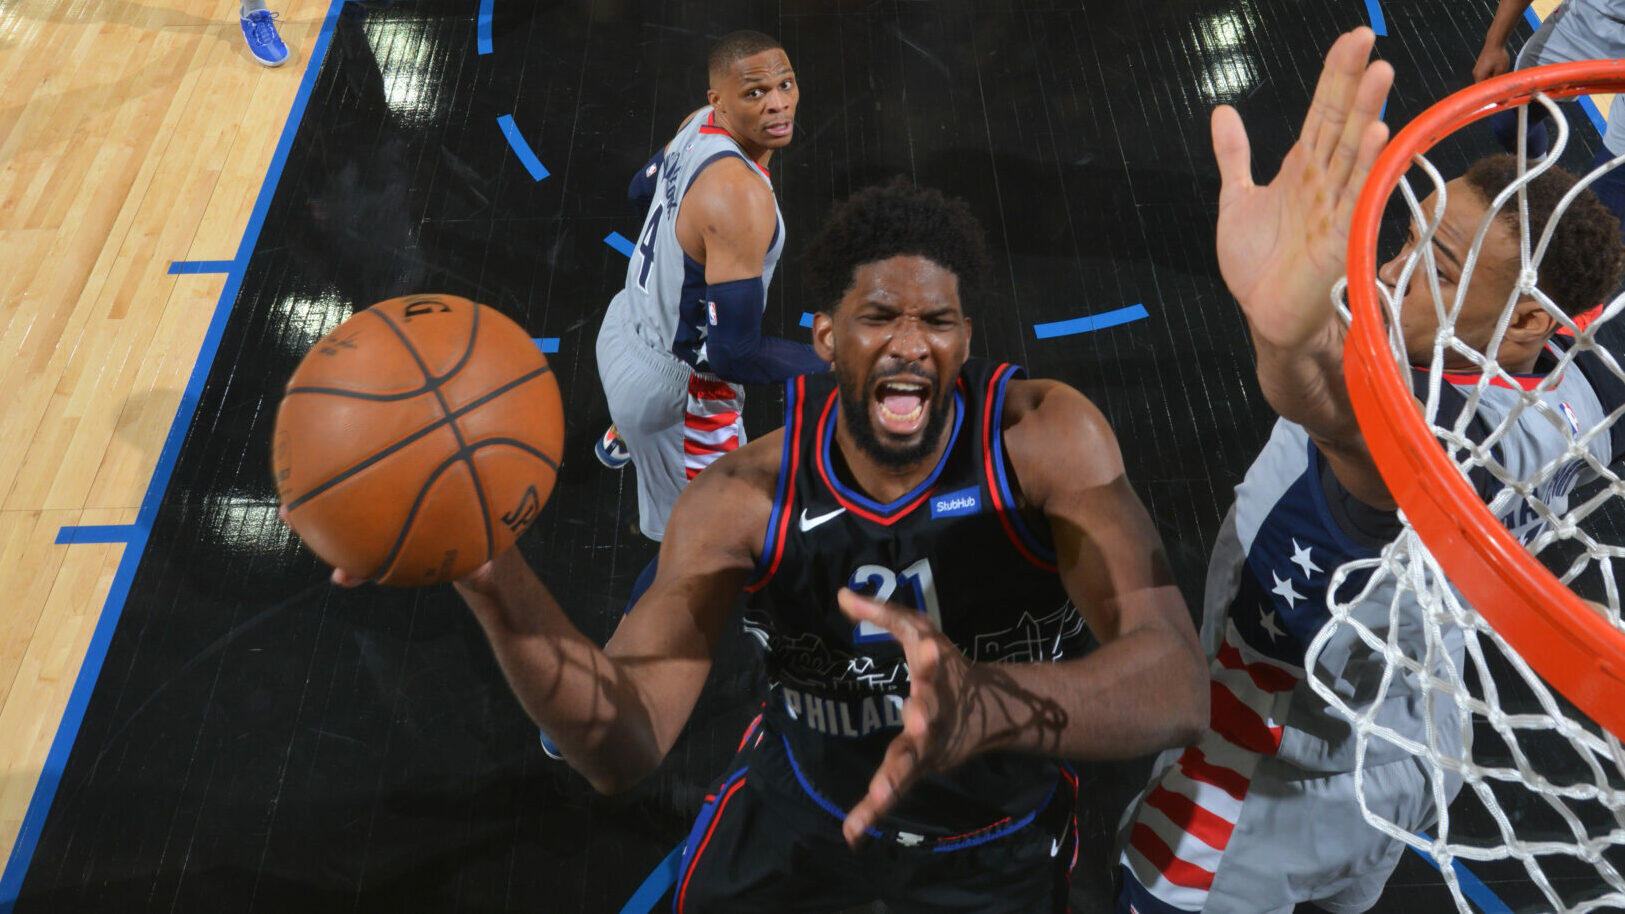 Harris, Embiid power Sixers to Game 1 win